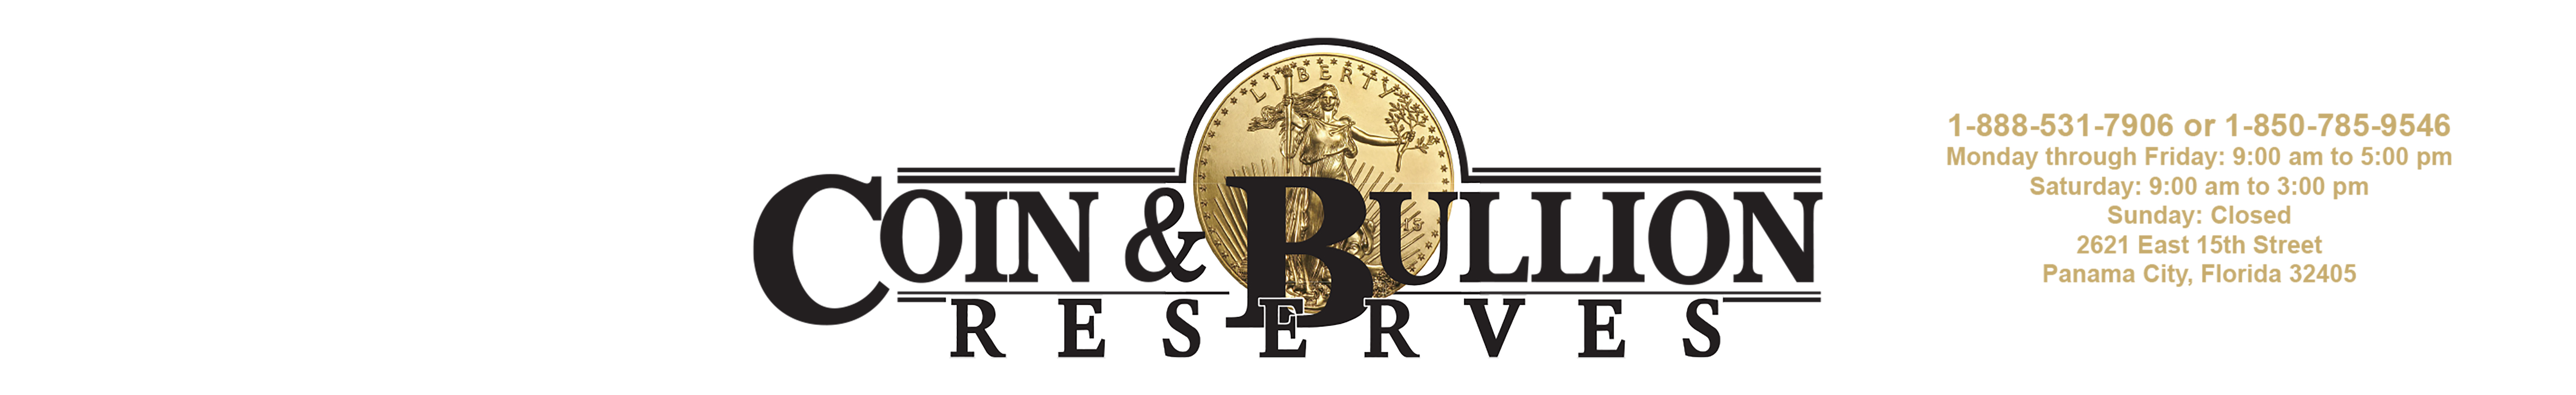 Coin and Bullion Reserve